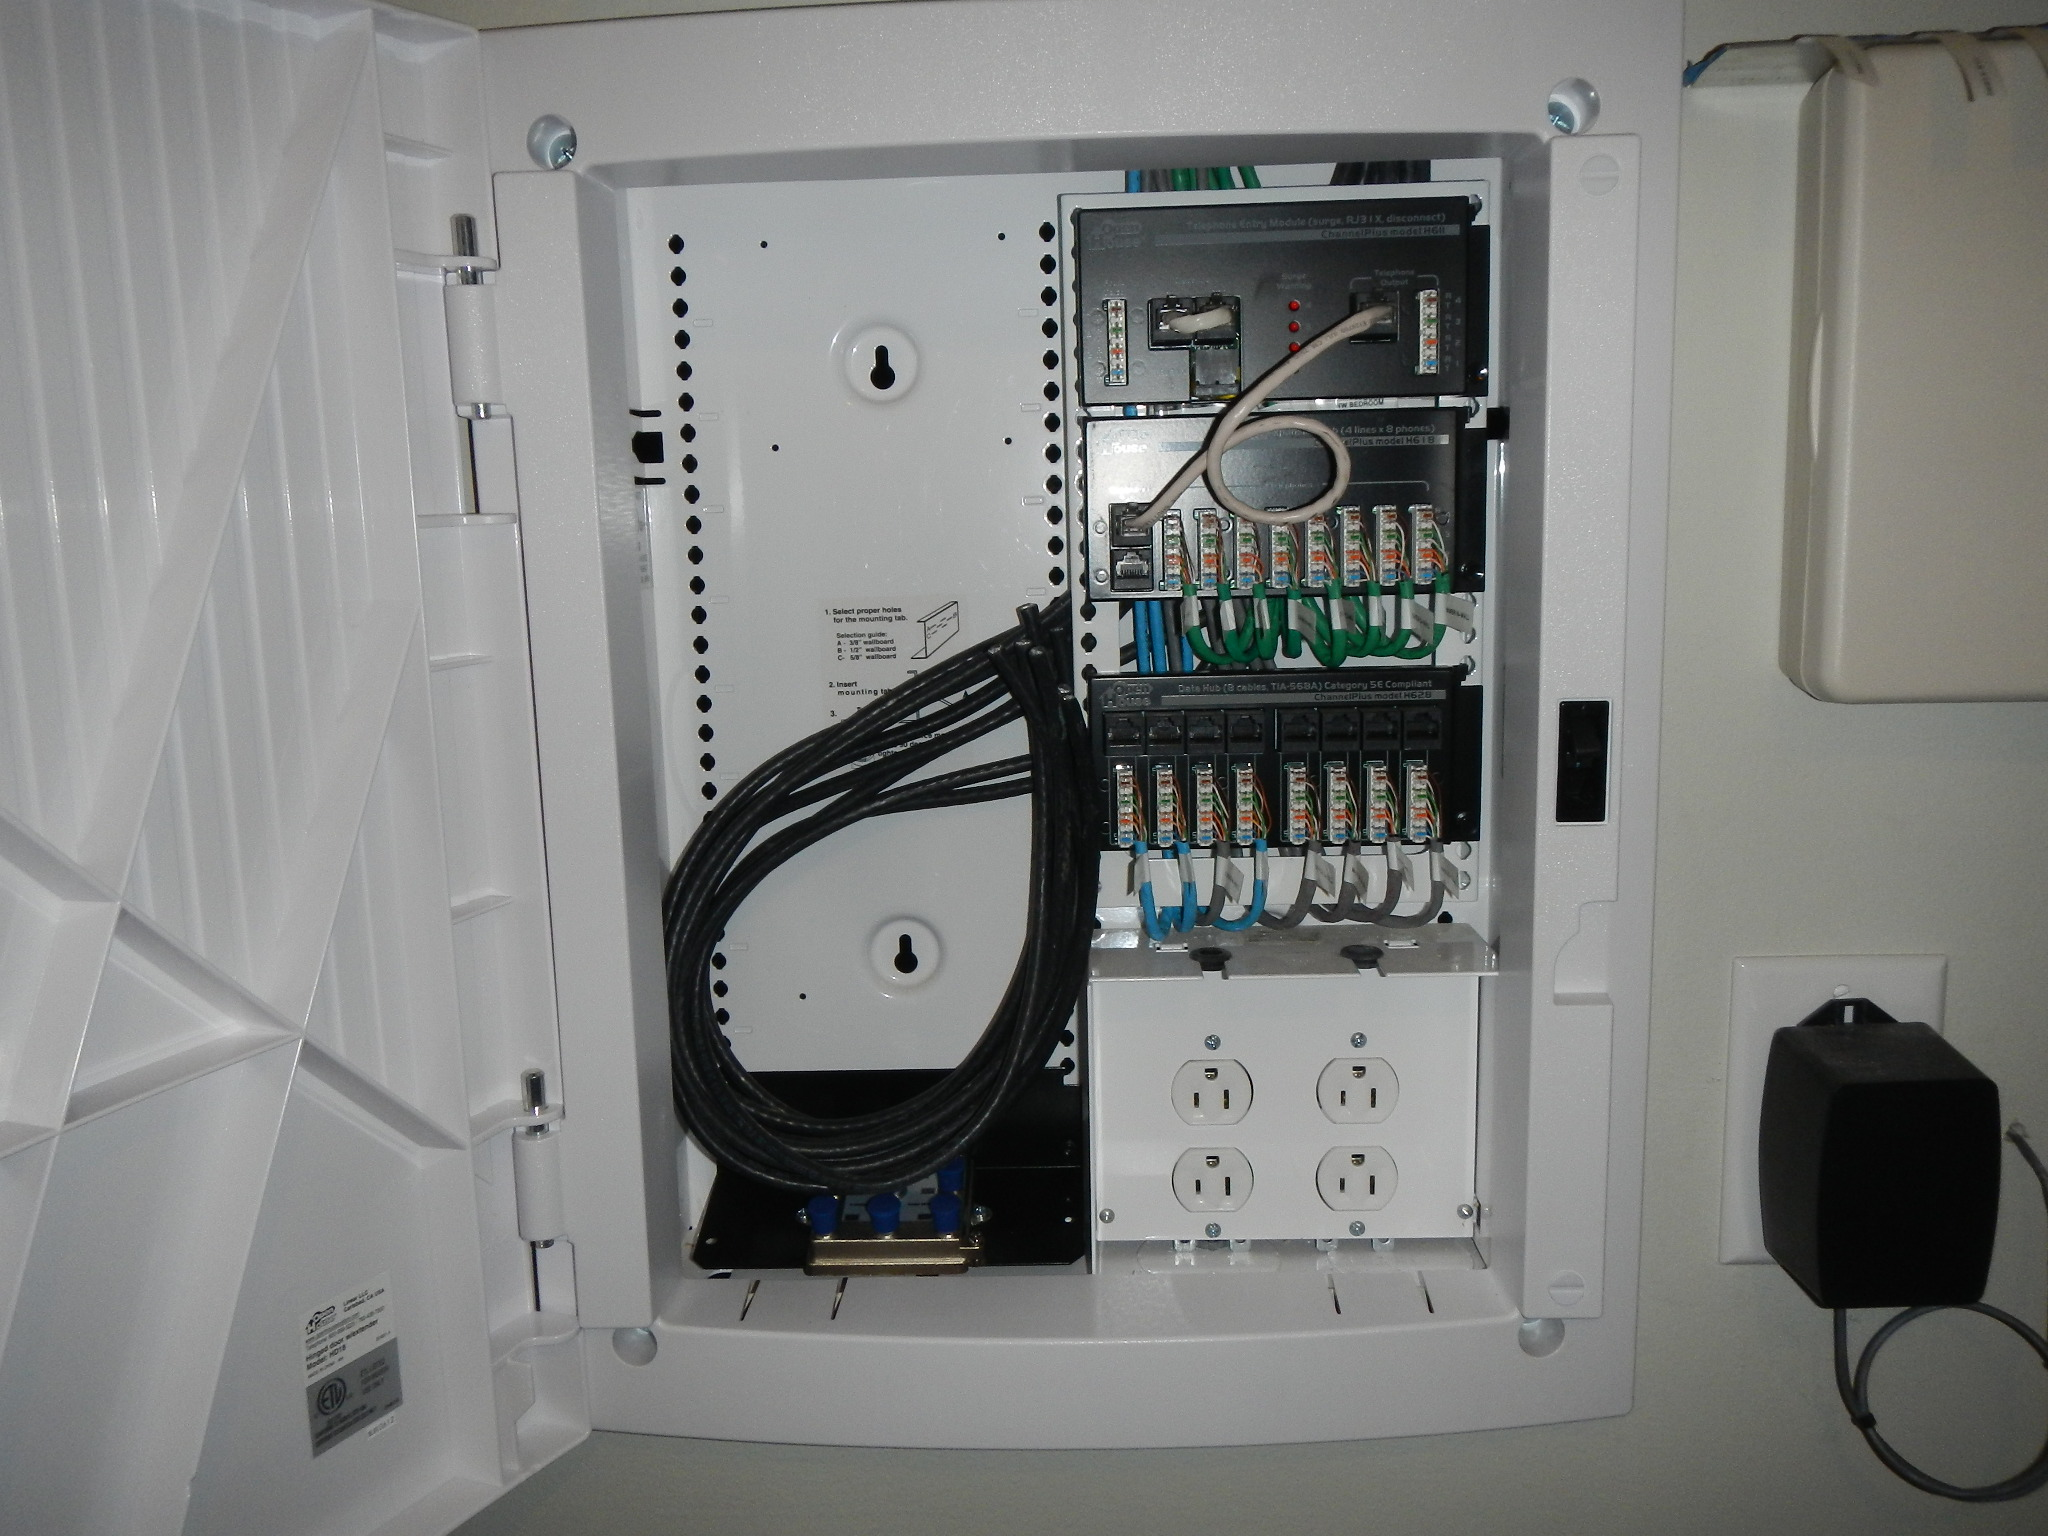 Home Structured Wiring Sys Requires 1gb 8 Port Router Or Switch W Technology 3 1 2 Deep Panel Embedded In Wall To Be